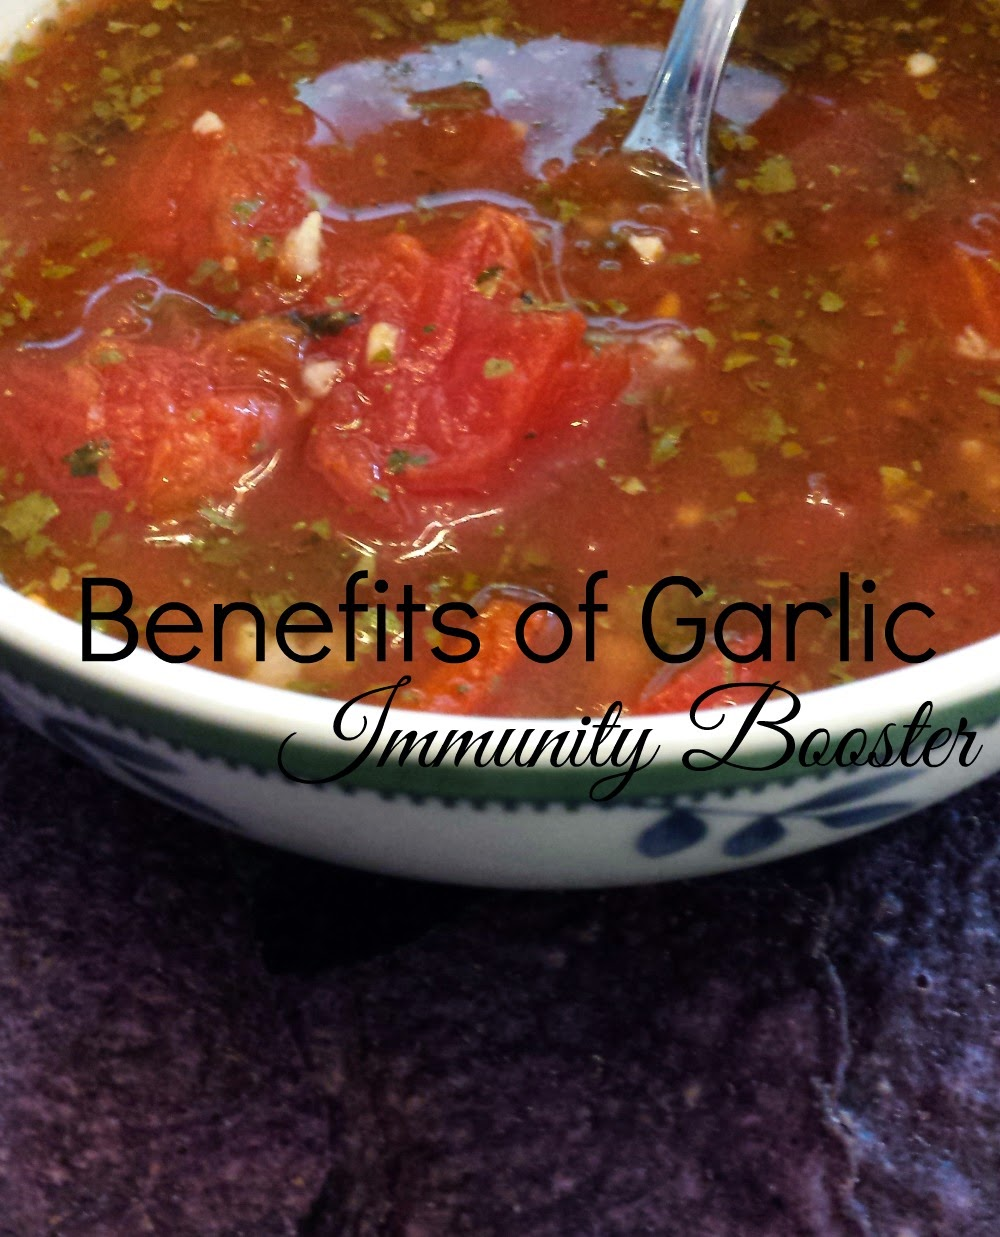 Beth Shaw's, author of YogaLean, recipe for immunity soup